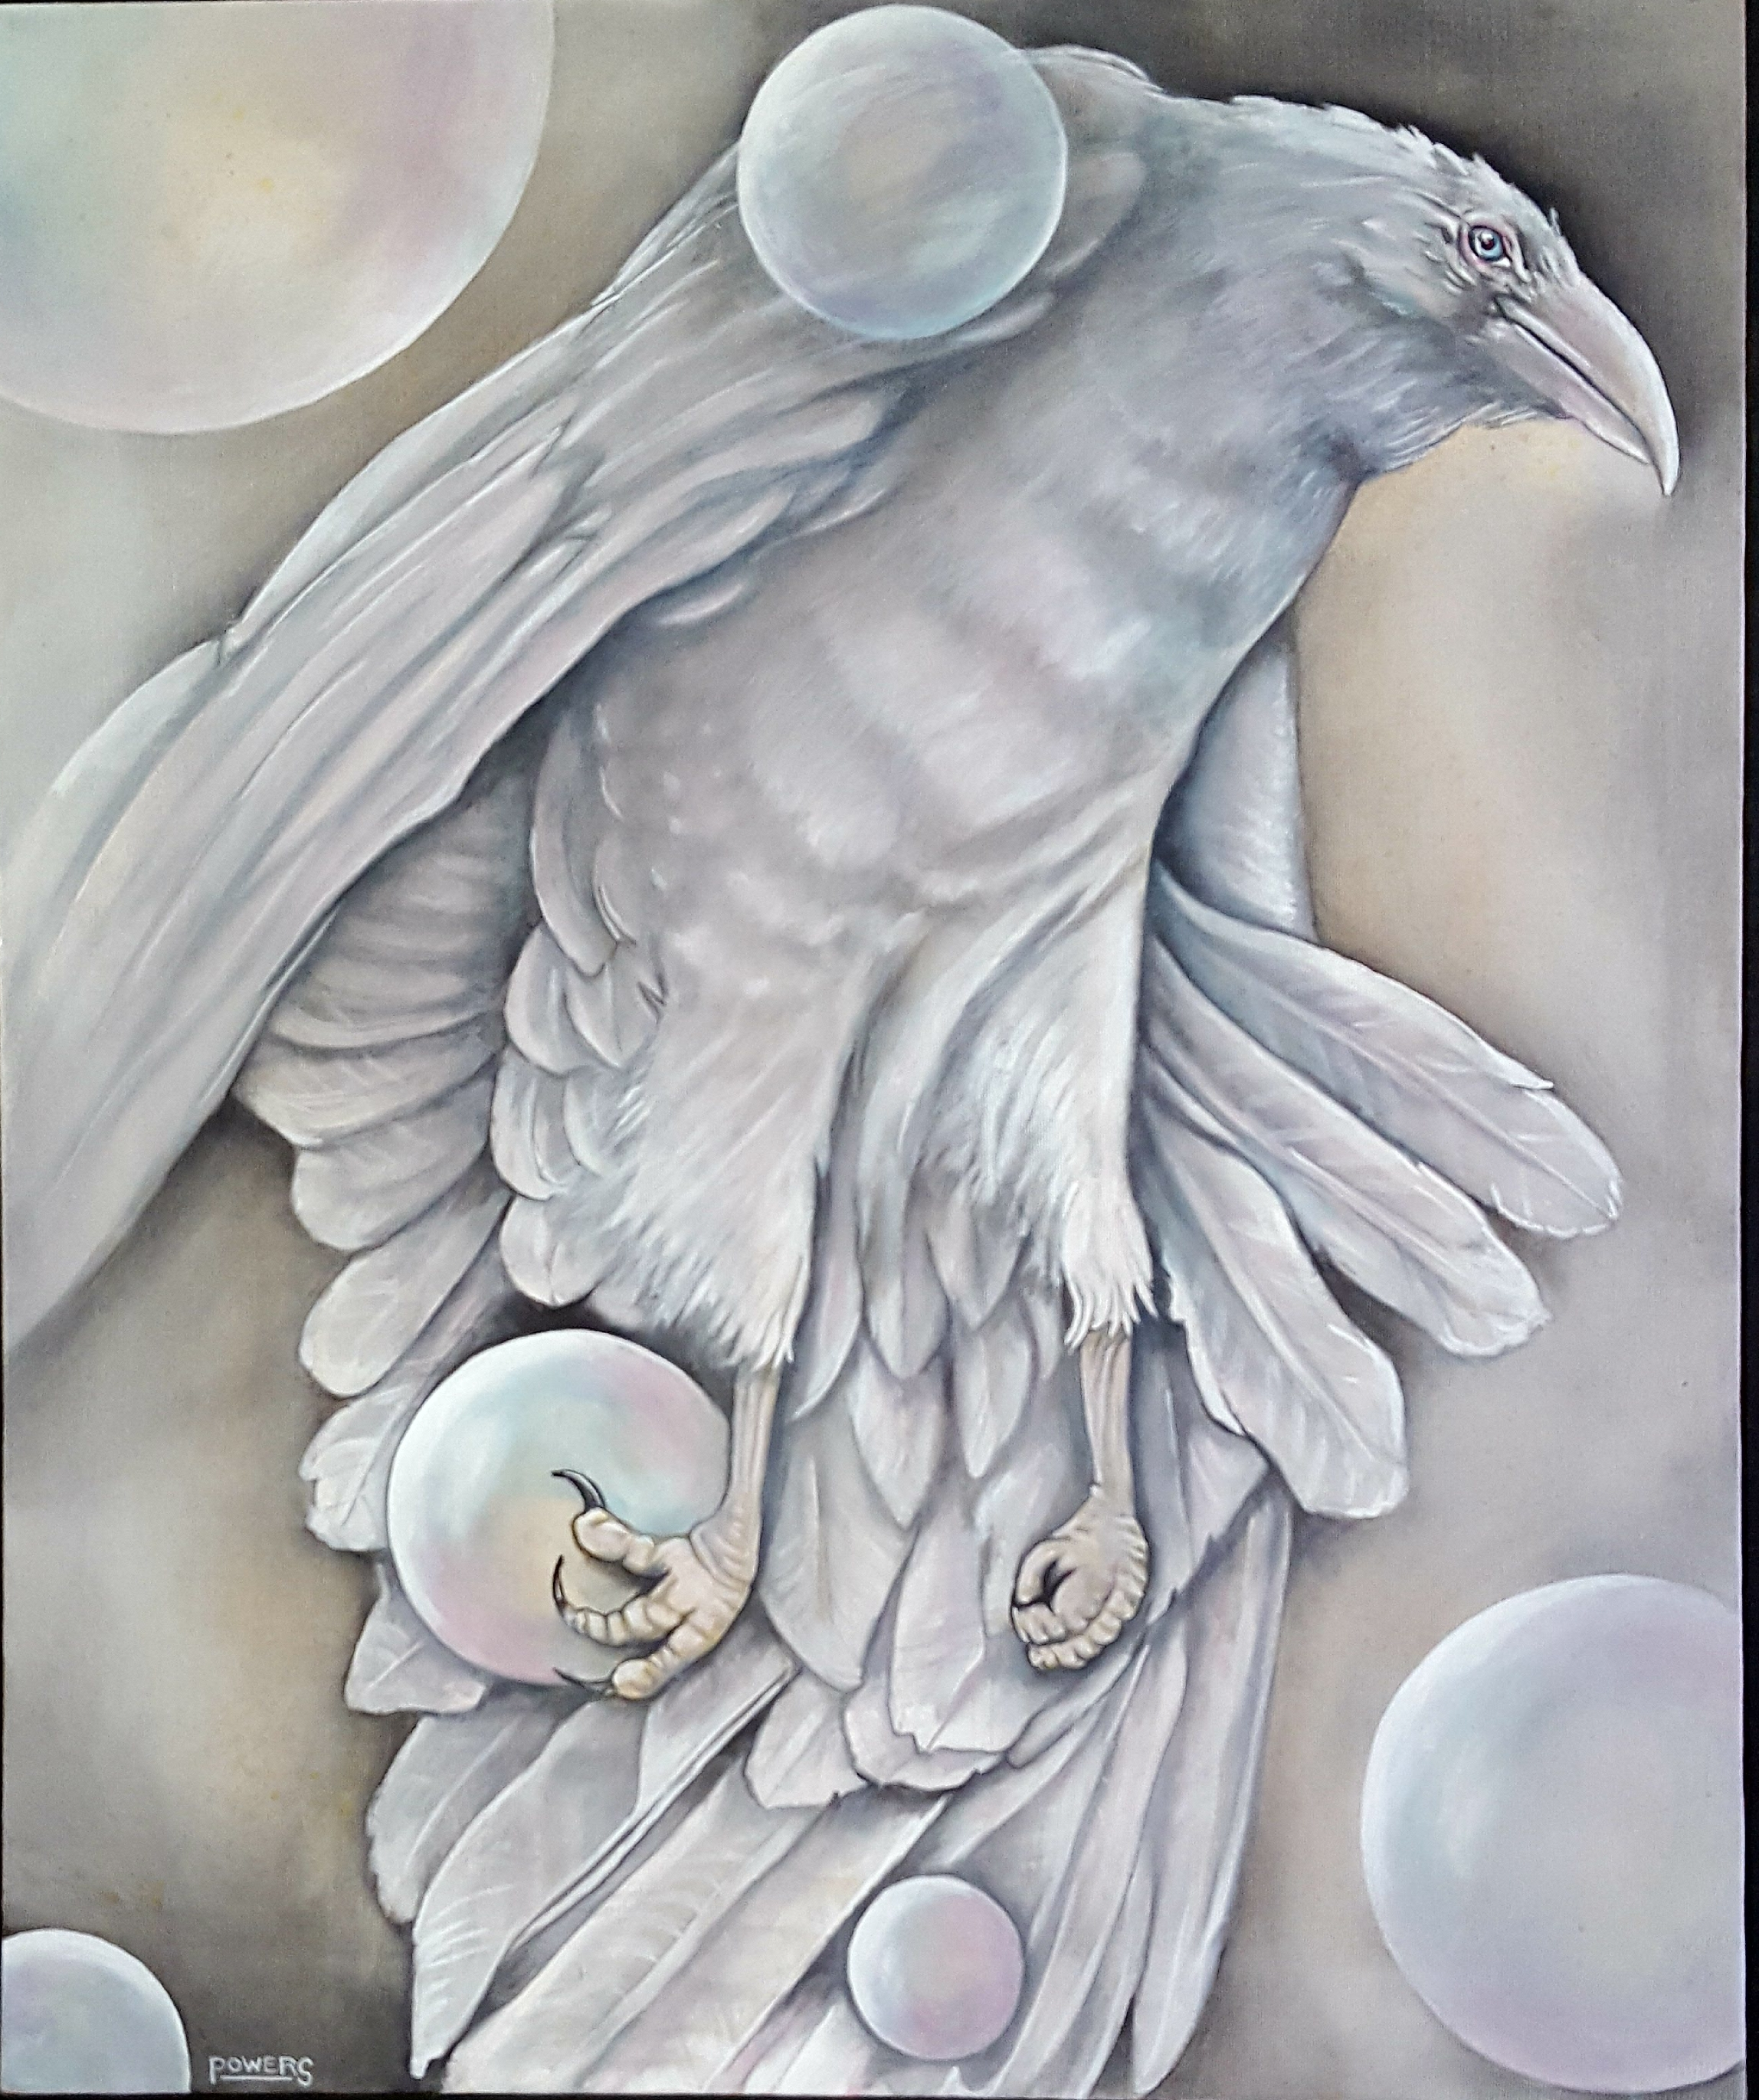 White Raven, by Dann Powers